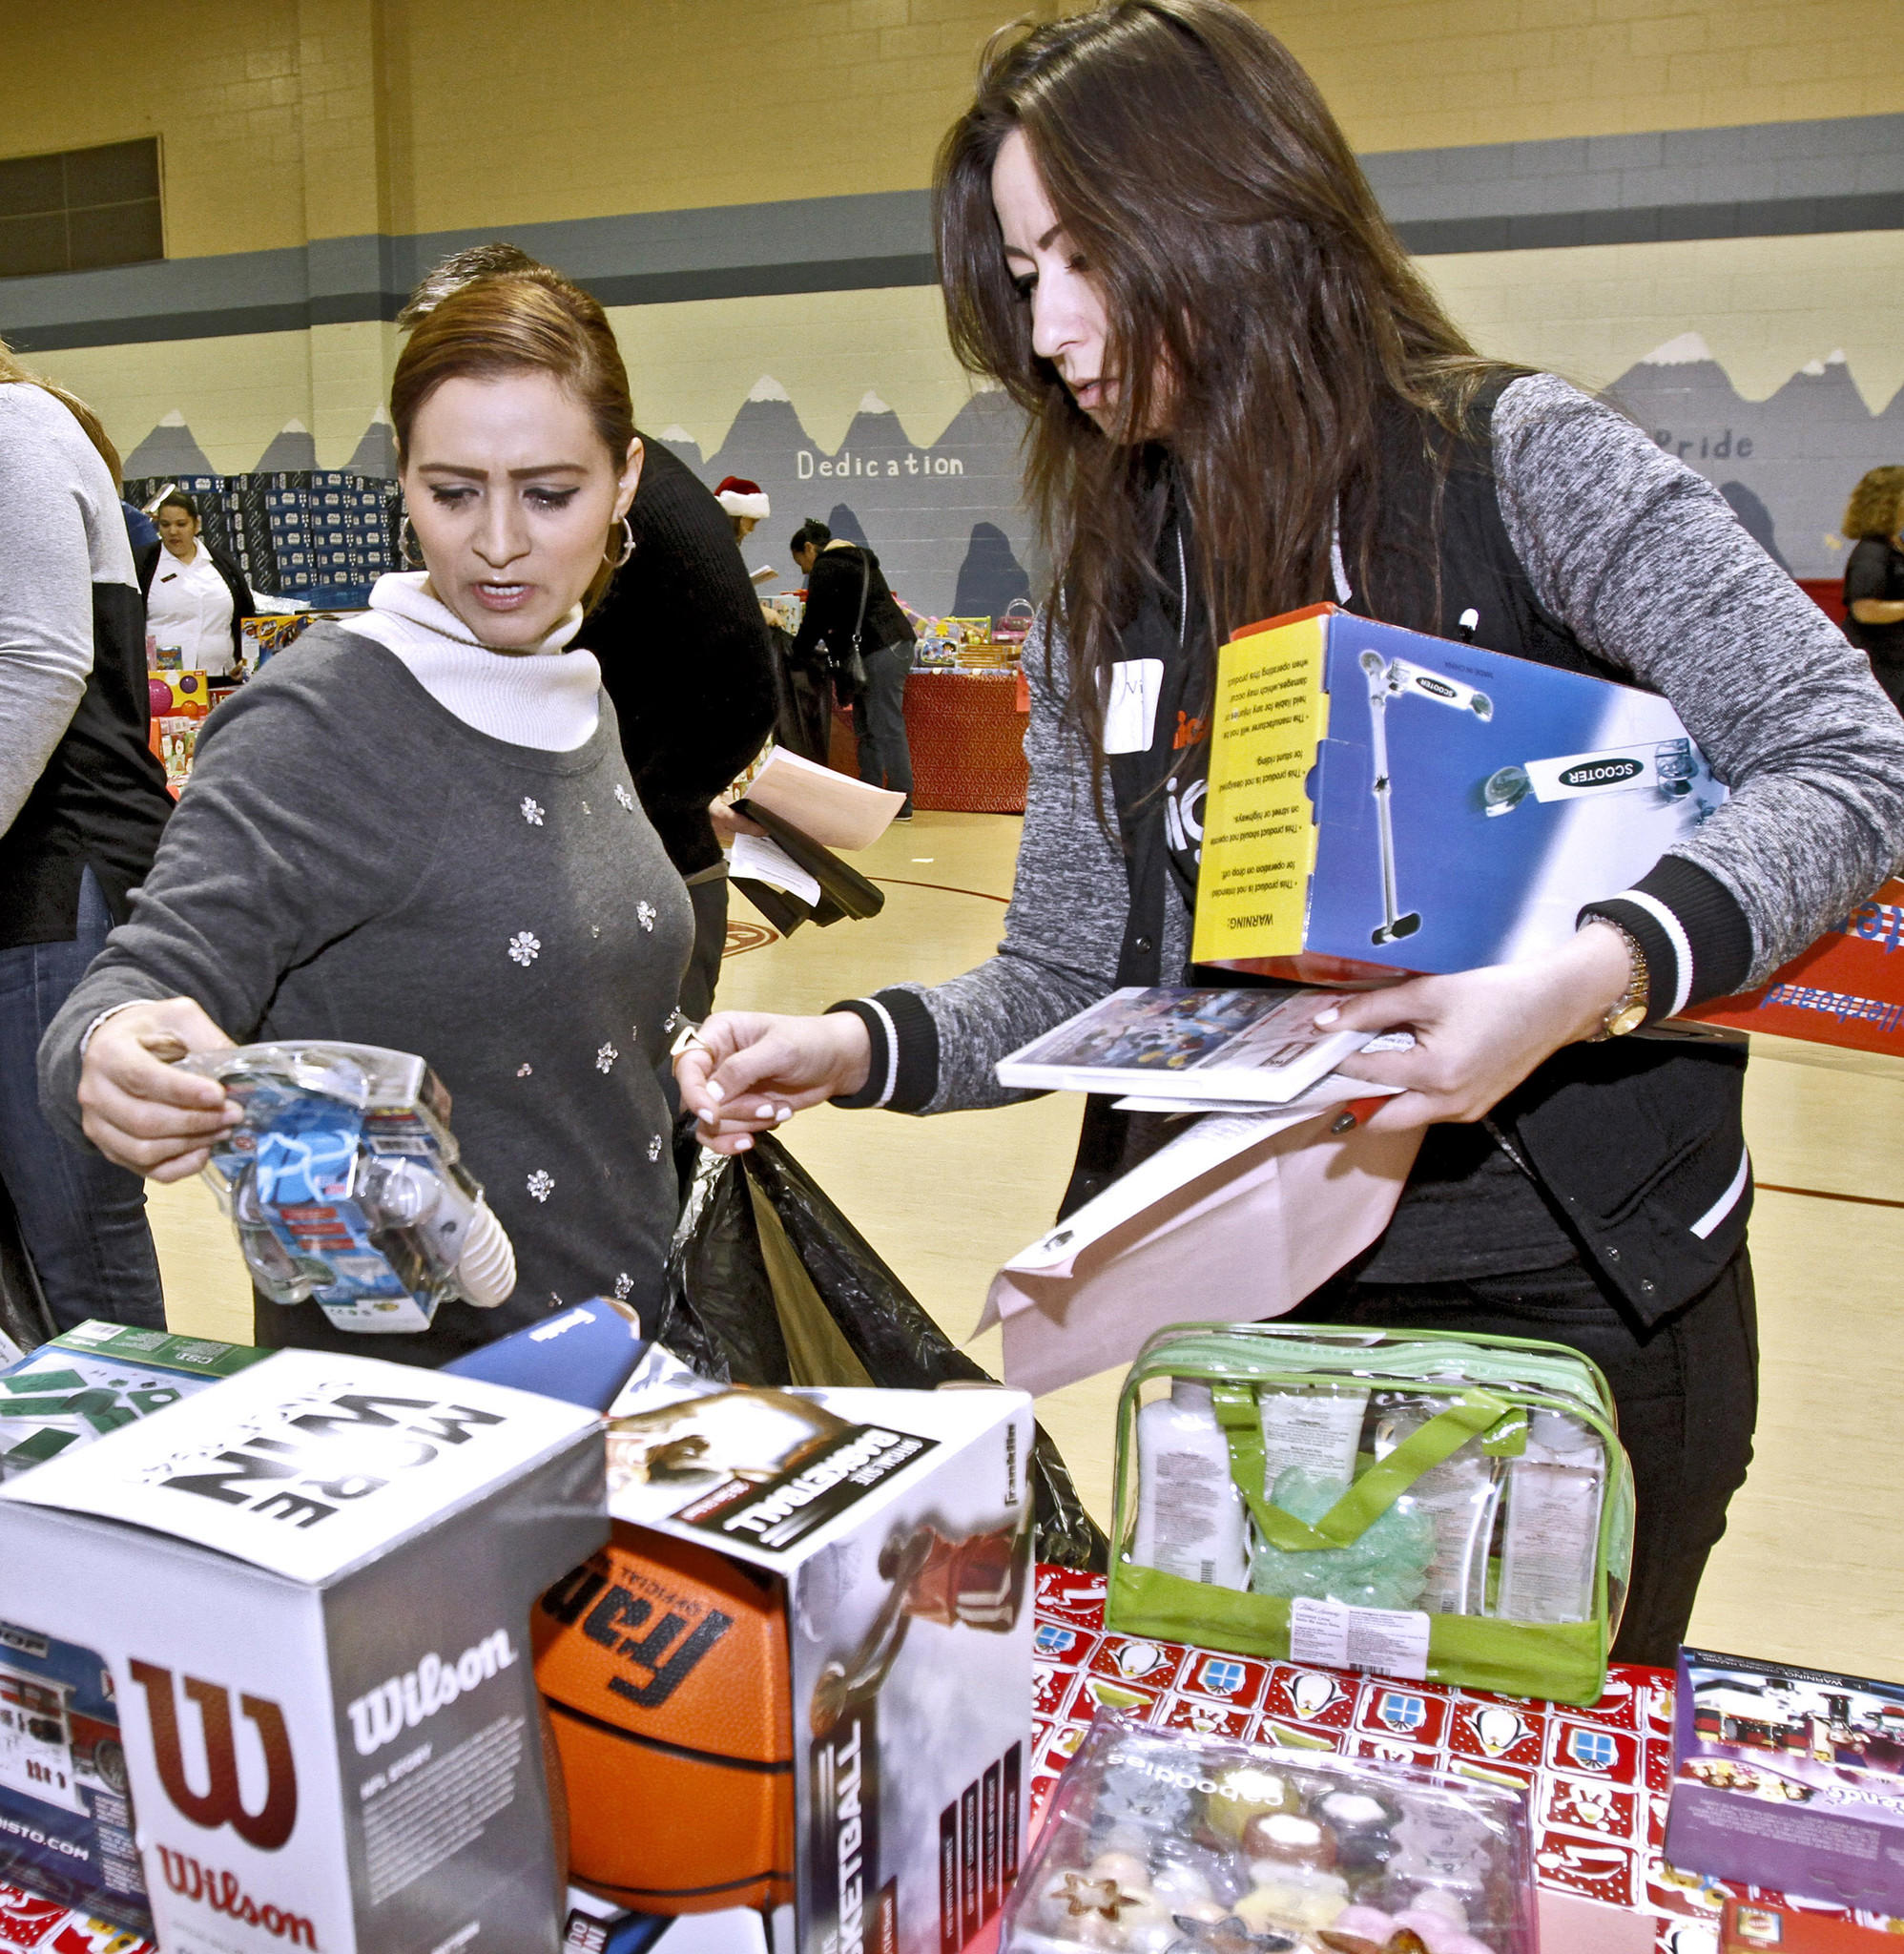 With the help of volunteer Victoria Wells, right, Rosario Ramirez, left, chooses games for her children during the Glendale Salvation Army toy distribution at the Corps gym in Glendale on Thursday, Dec. 19, 2013. About 500 local families were given toys for children up to 12 years old.